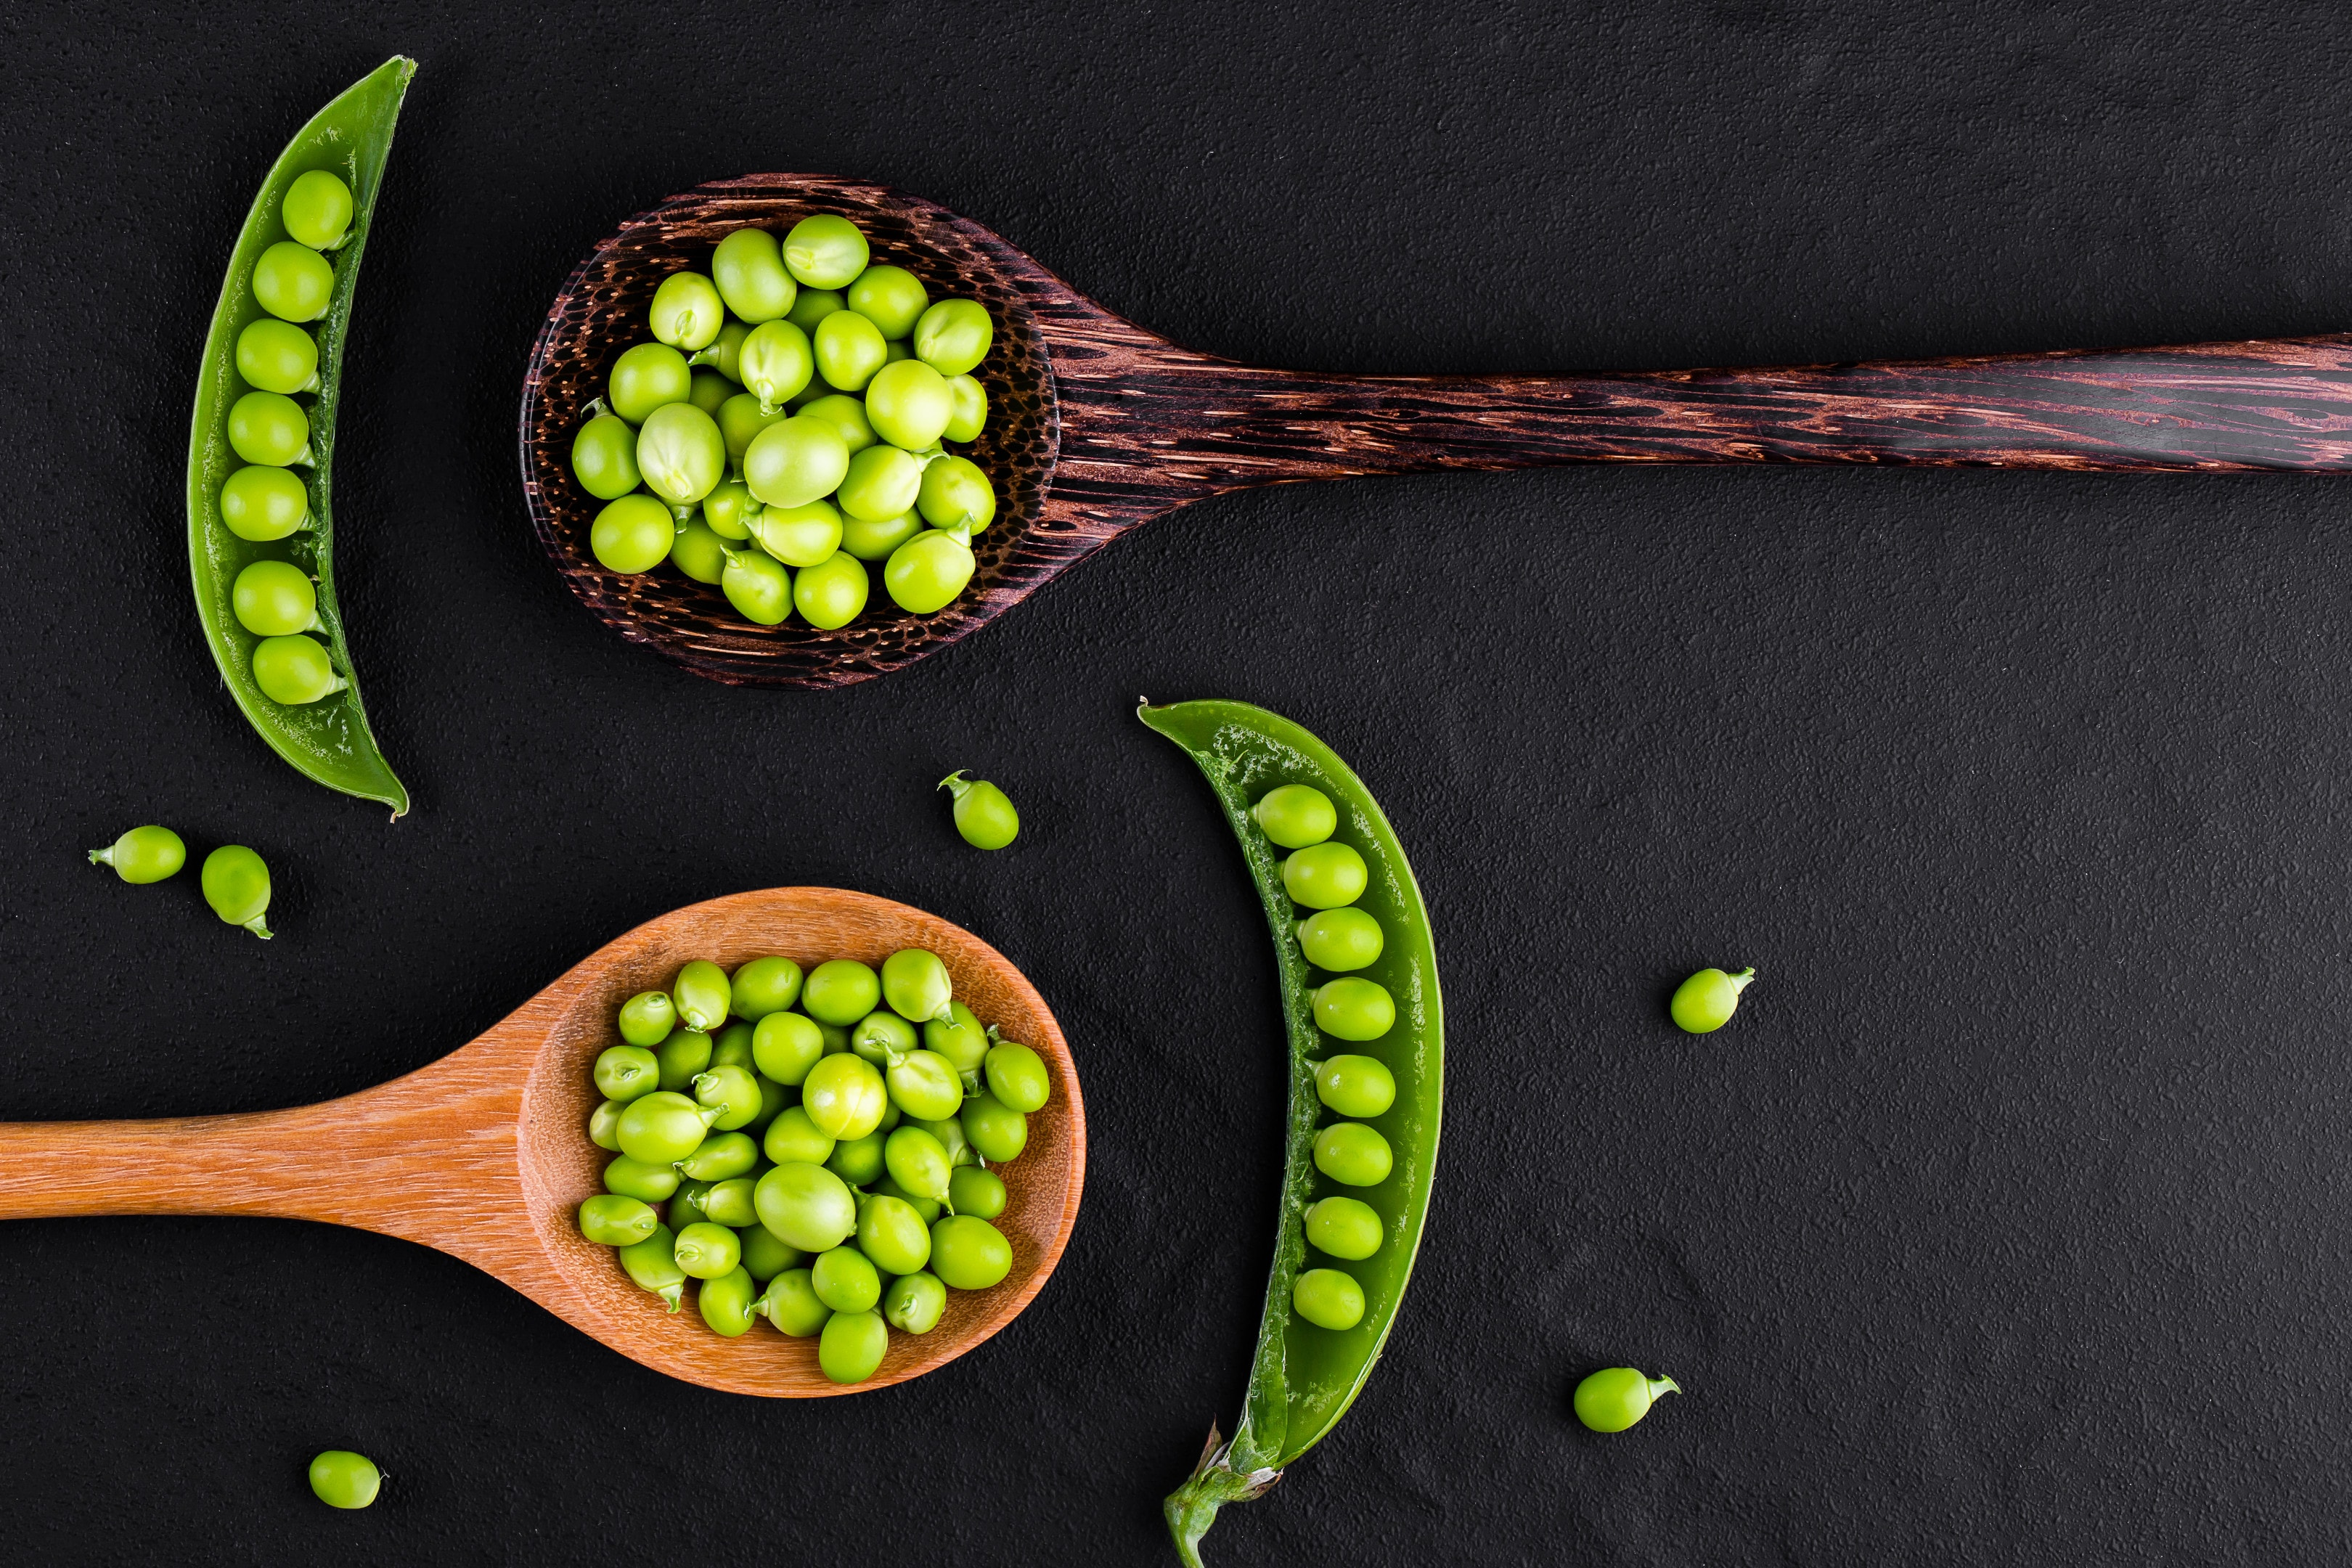 Pea pods on wooden spoons on black background